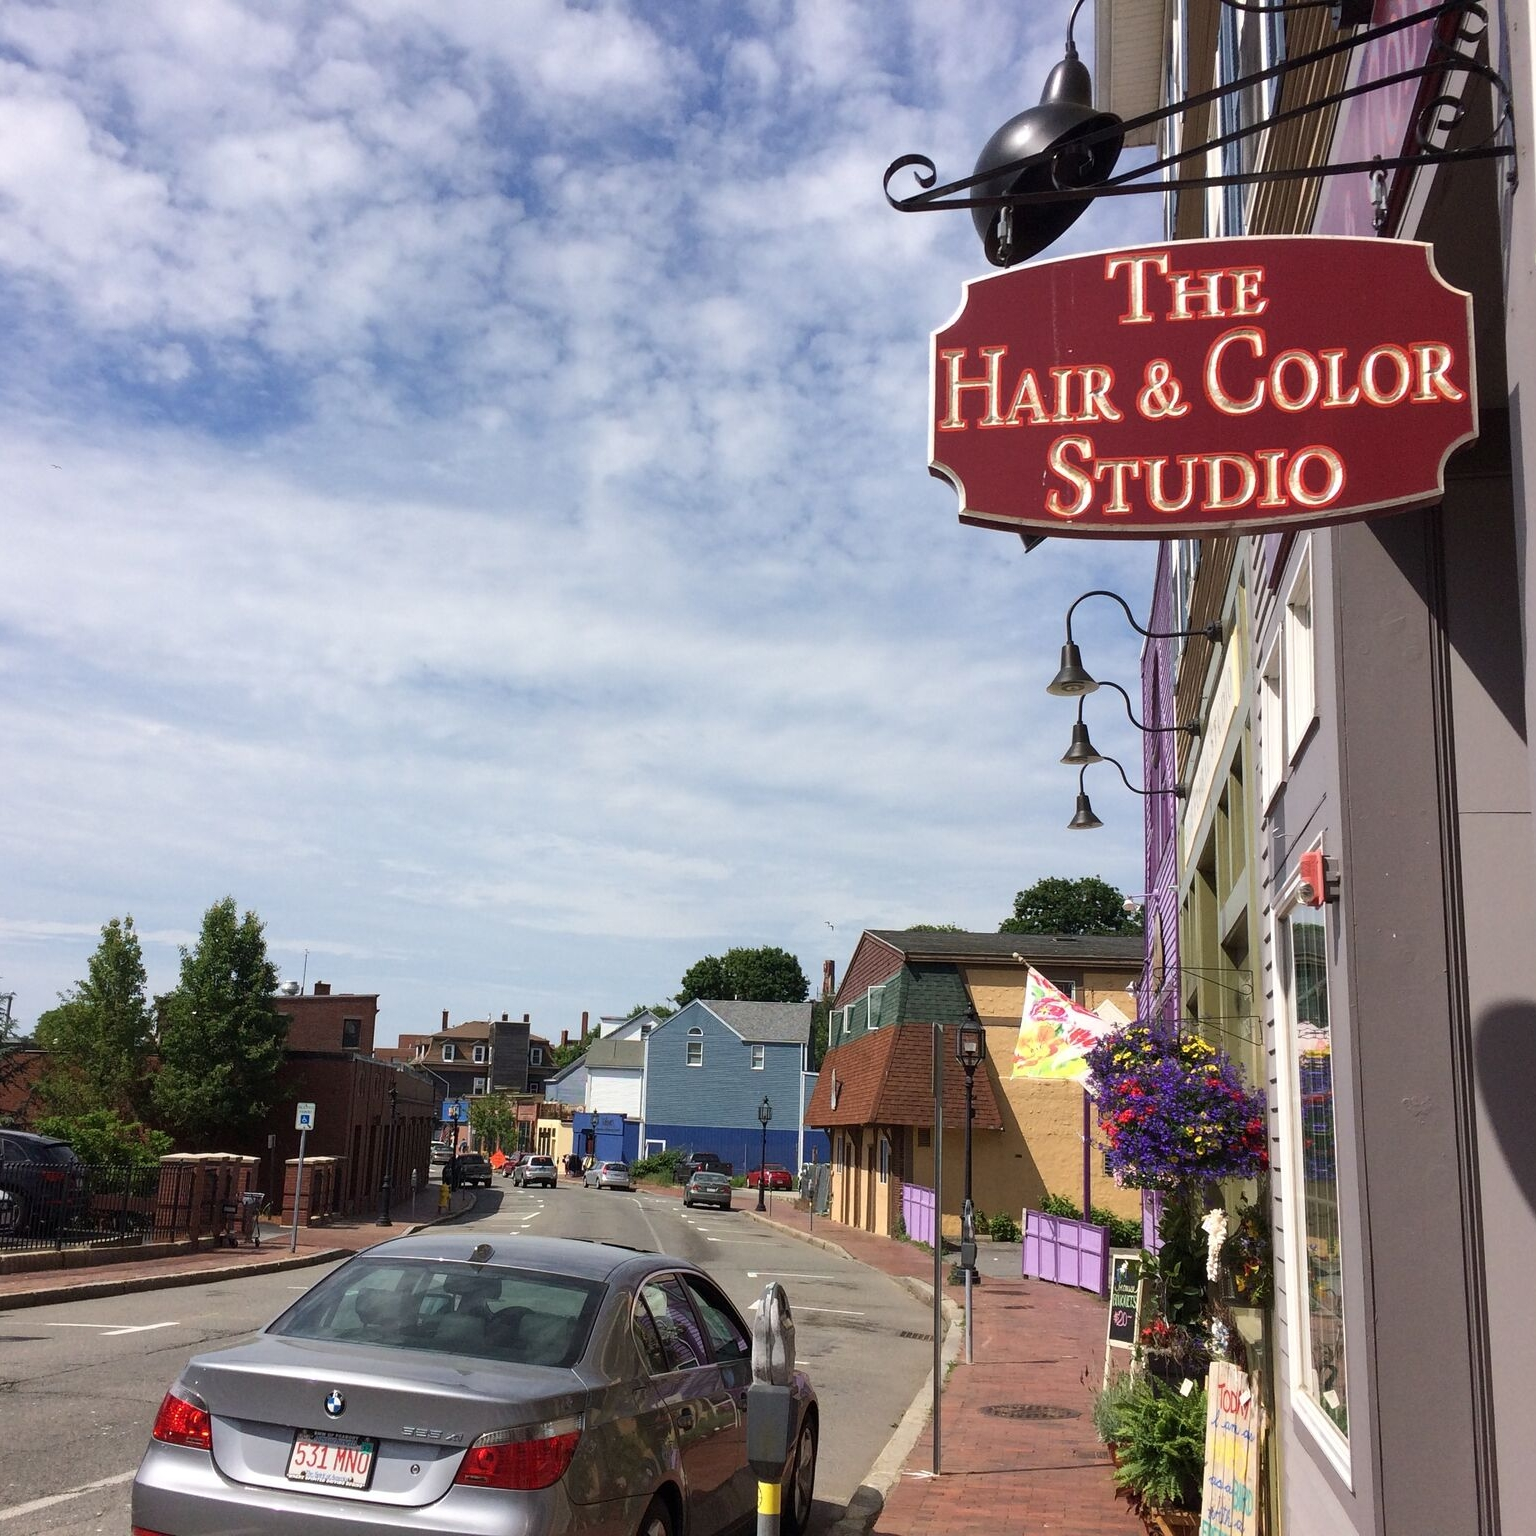 The Hair & Color Studio